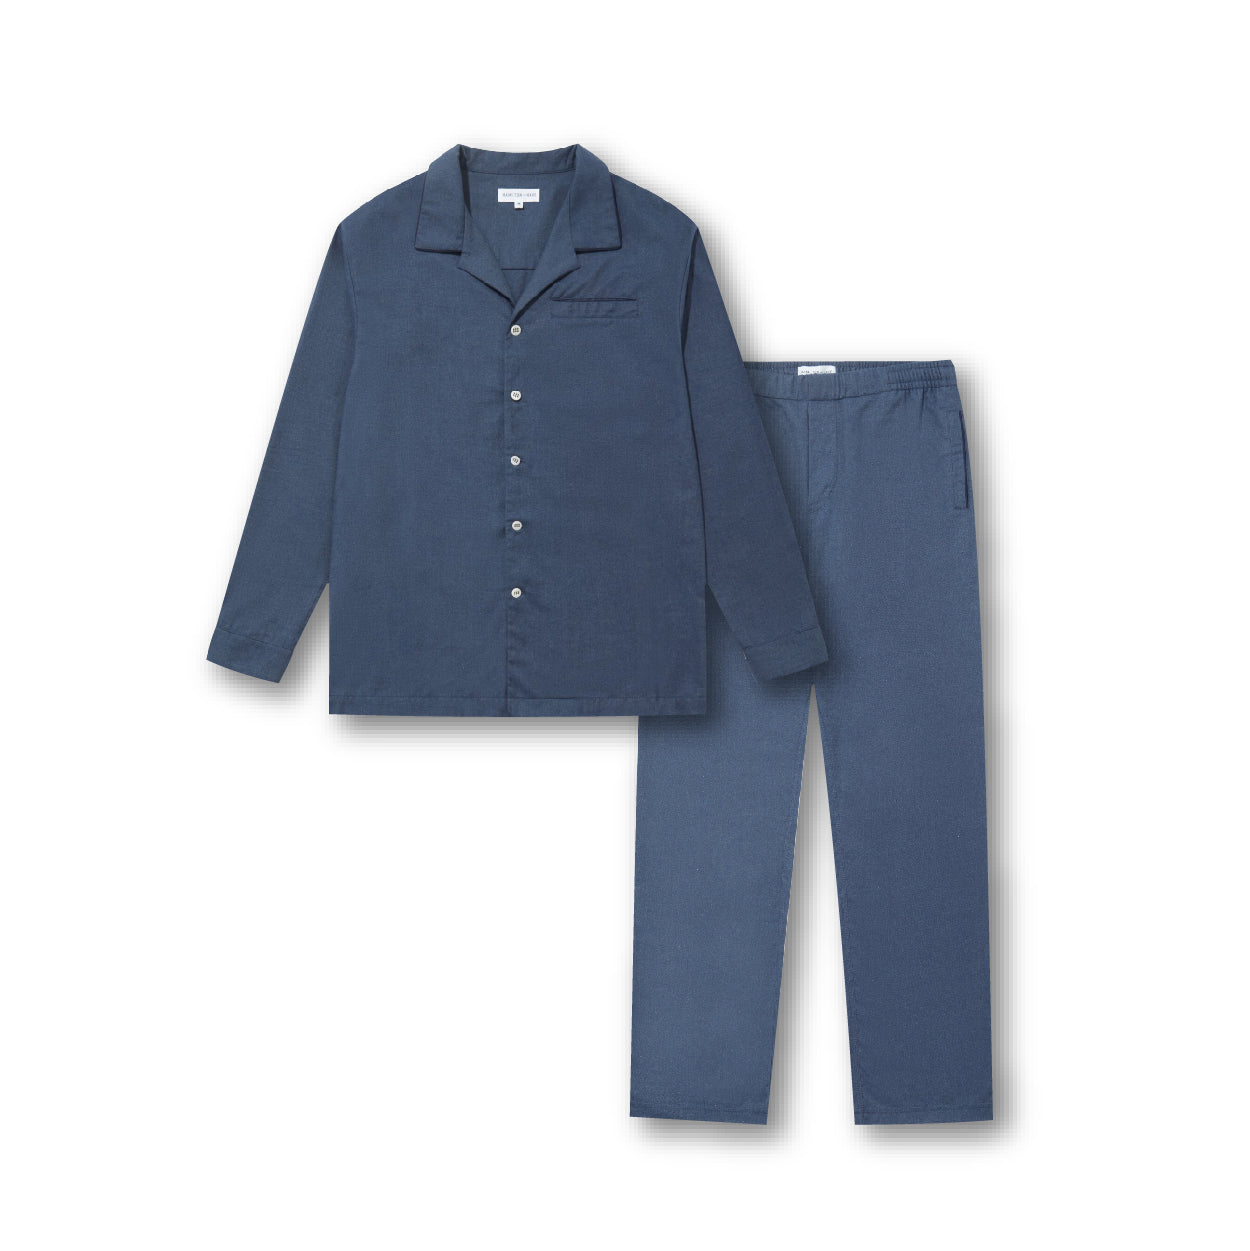 Pyjama Set - Navy Flannel - Hamilton and Hare Ltd